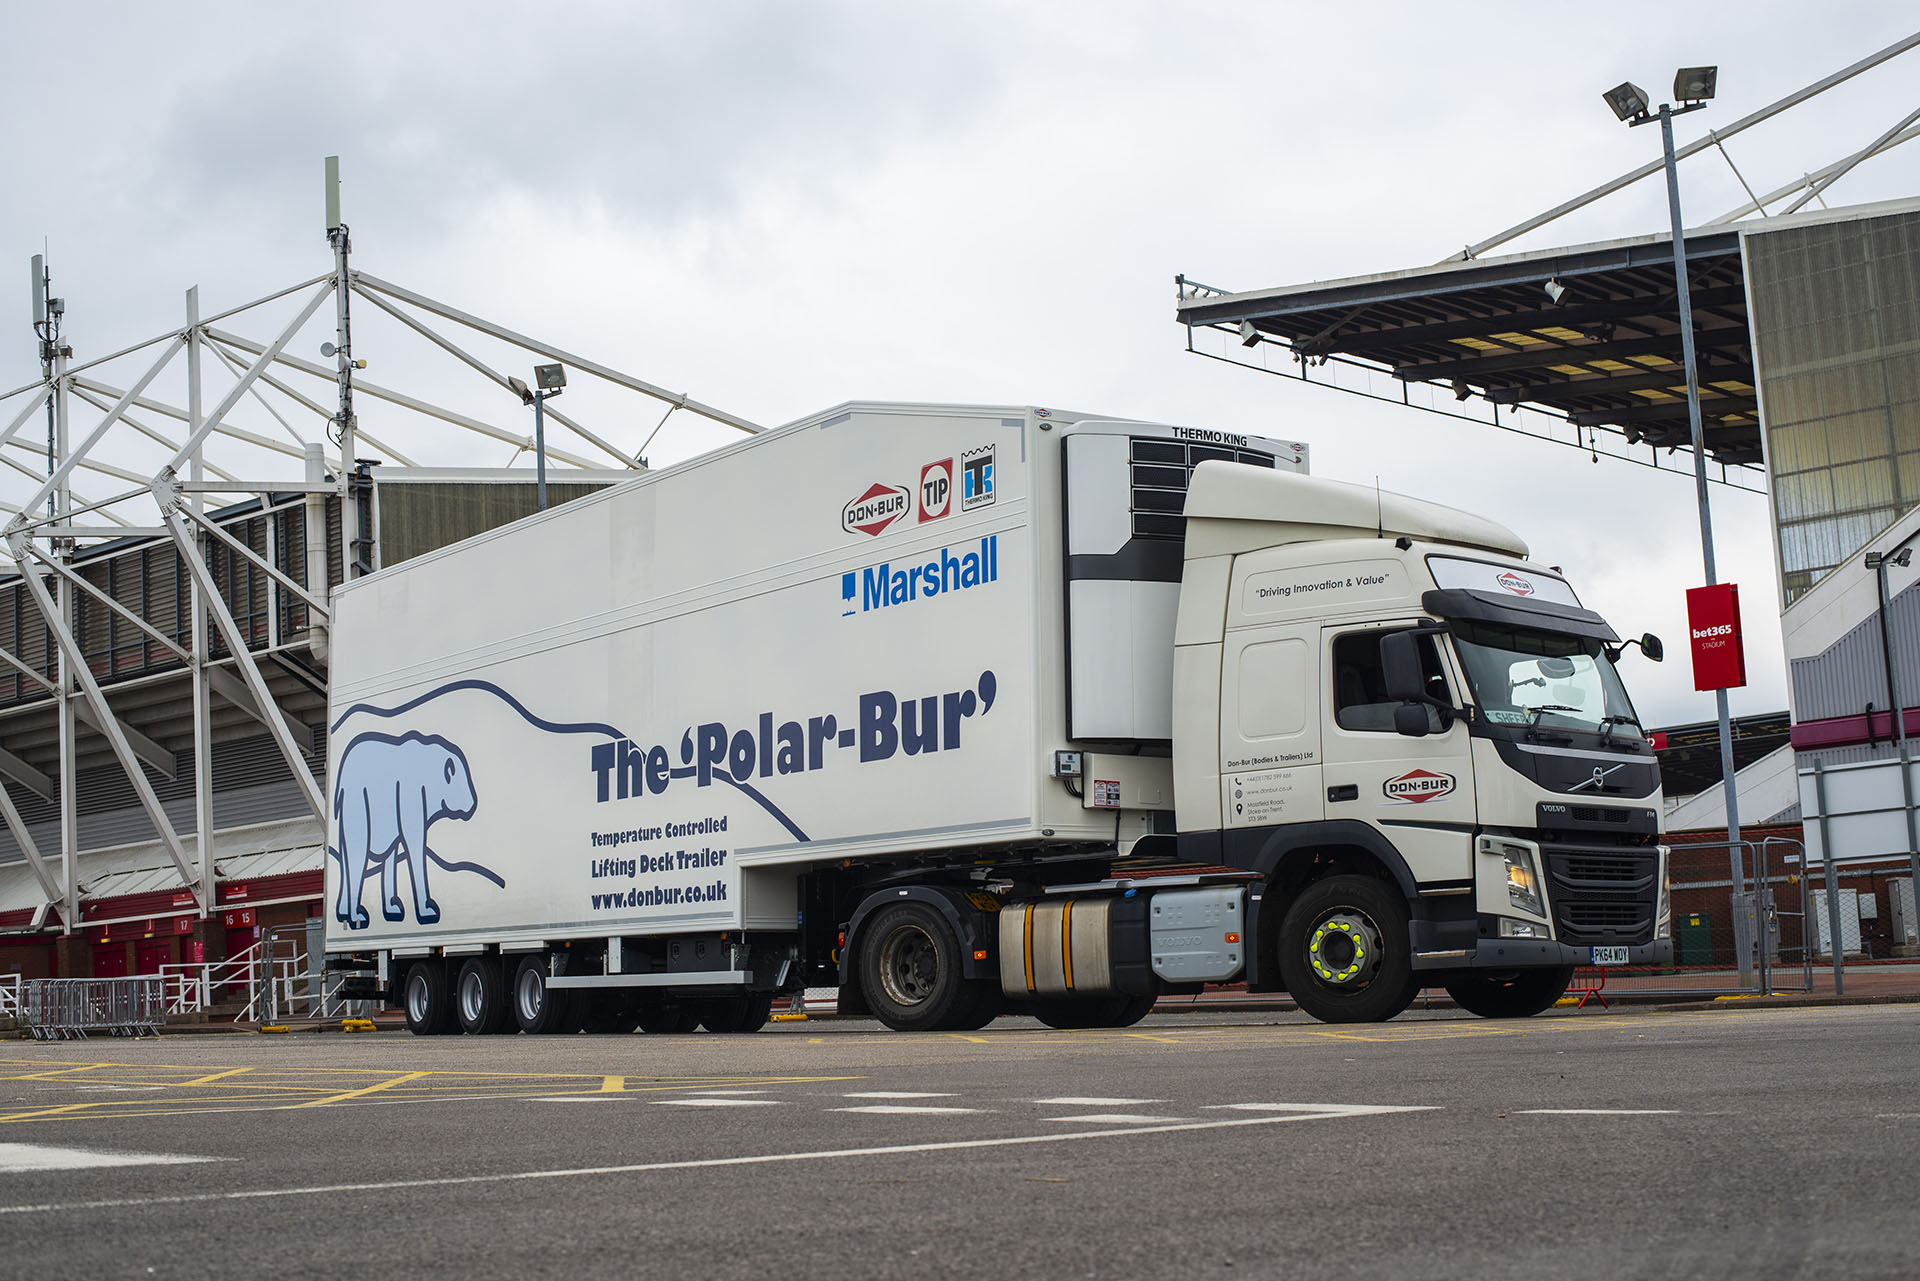 Don-Bur's new 'Polar-Bur' trailer makes its UK and European debut with TIP Trailer Services